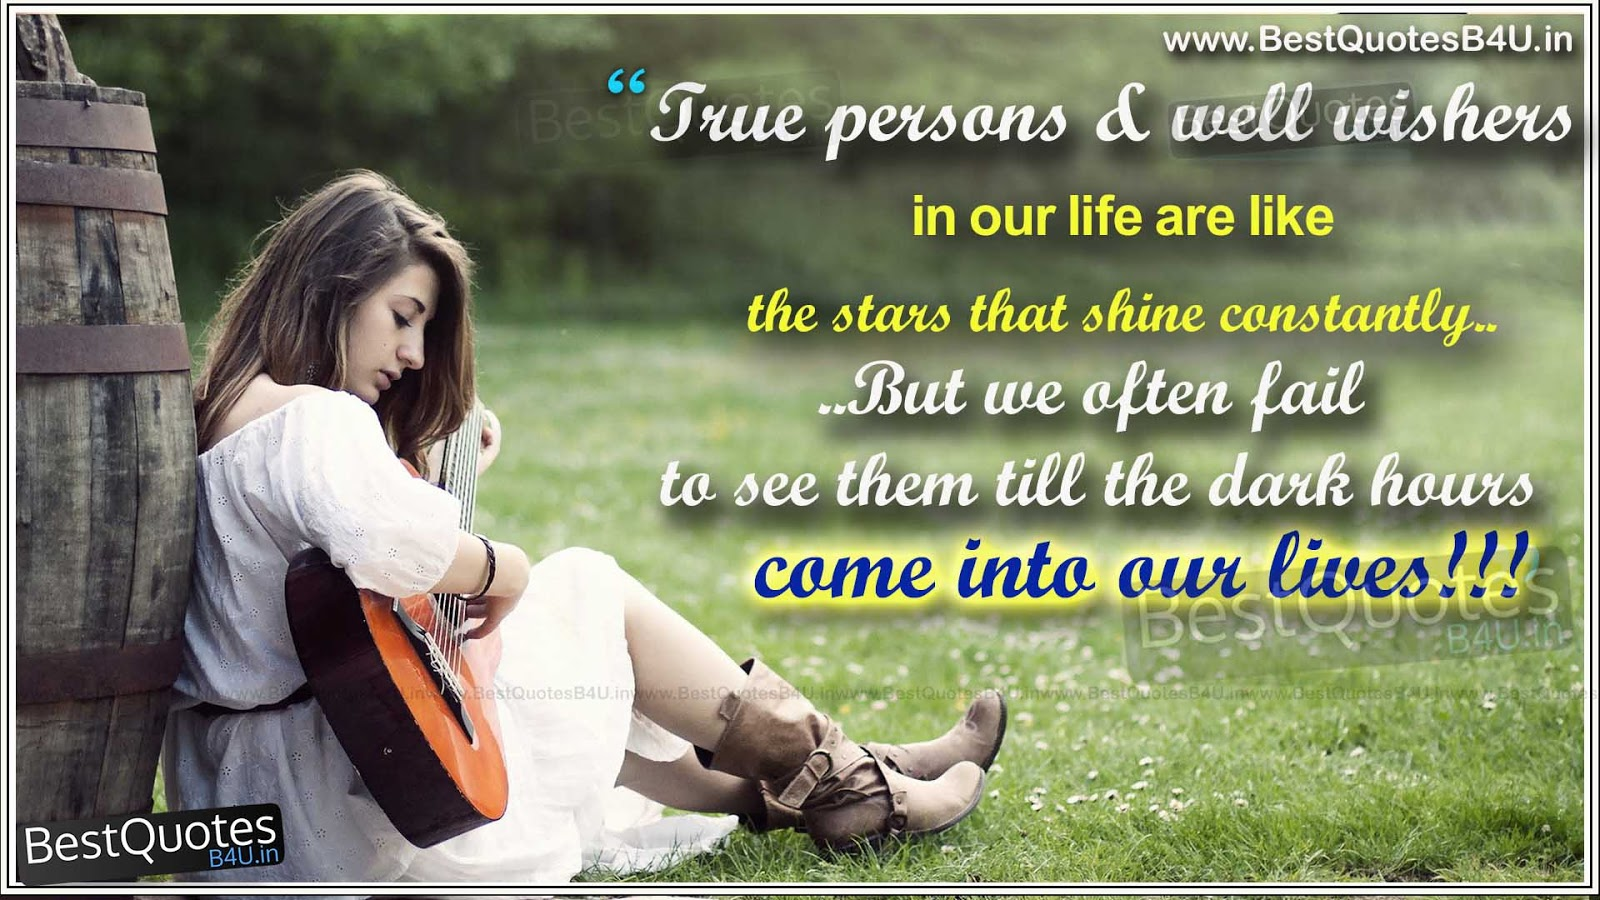 Heart Touching Friendship Quotes With Images In Hindi The Emoji